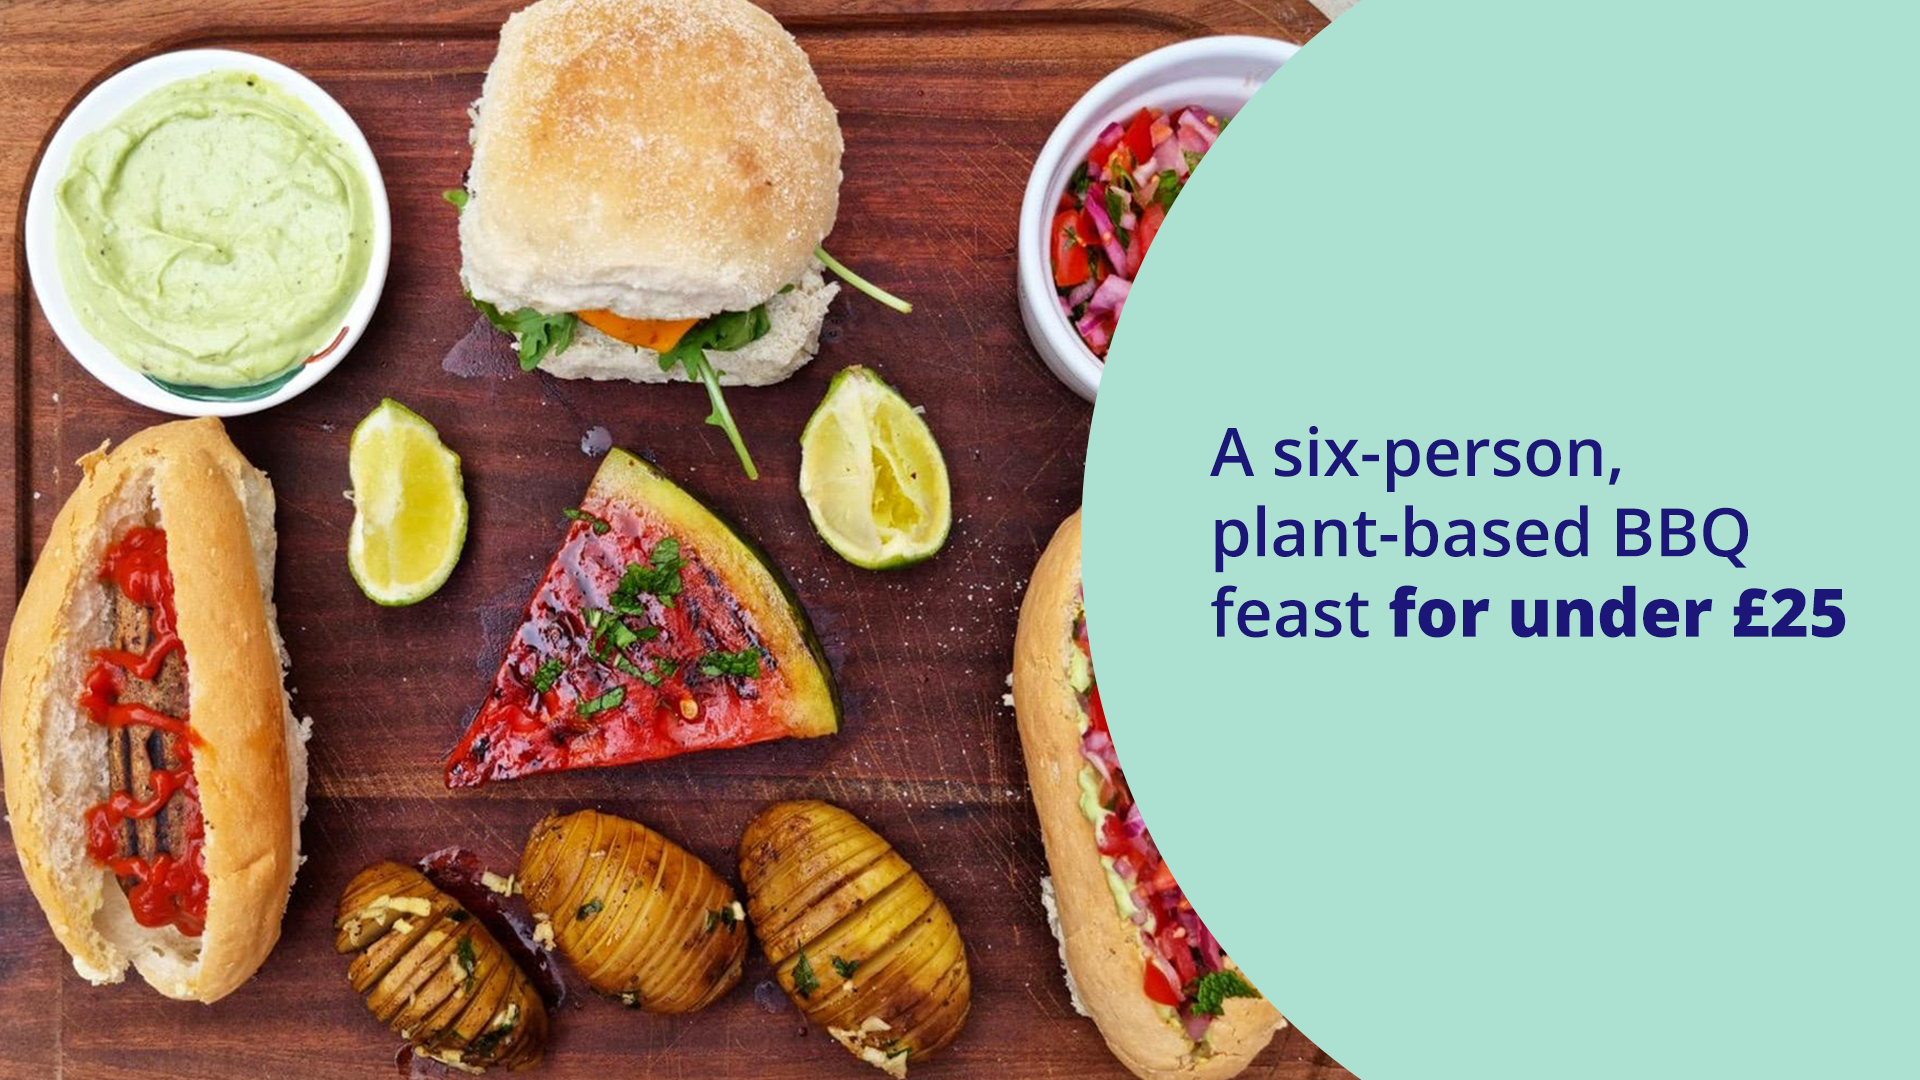 Featured image for A six-person, plant-based BBQ feast for under £25